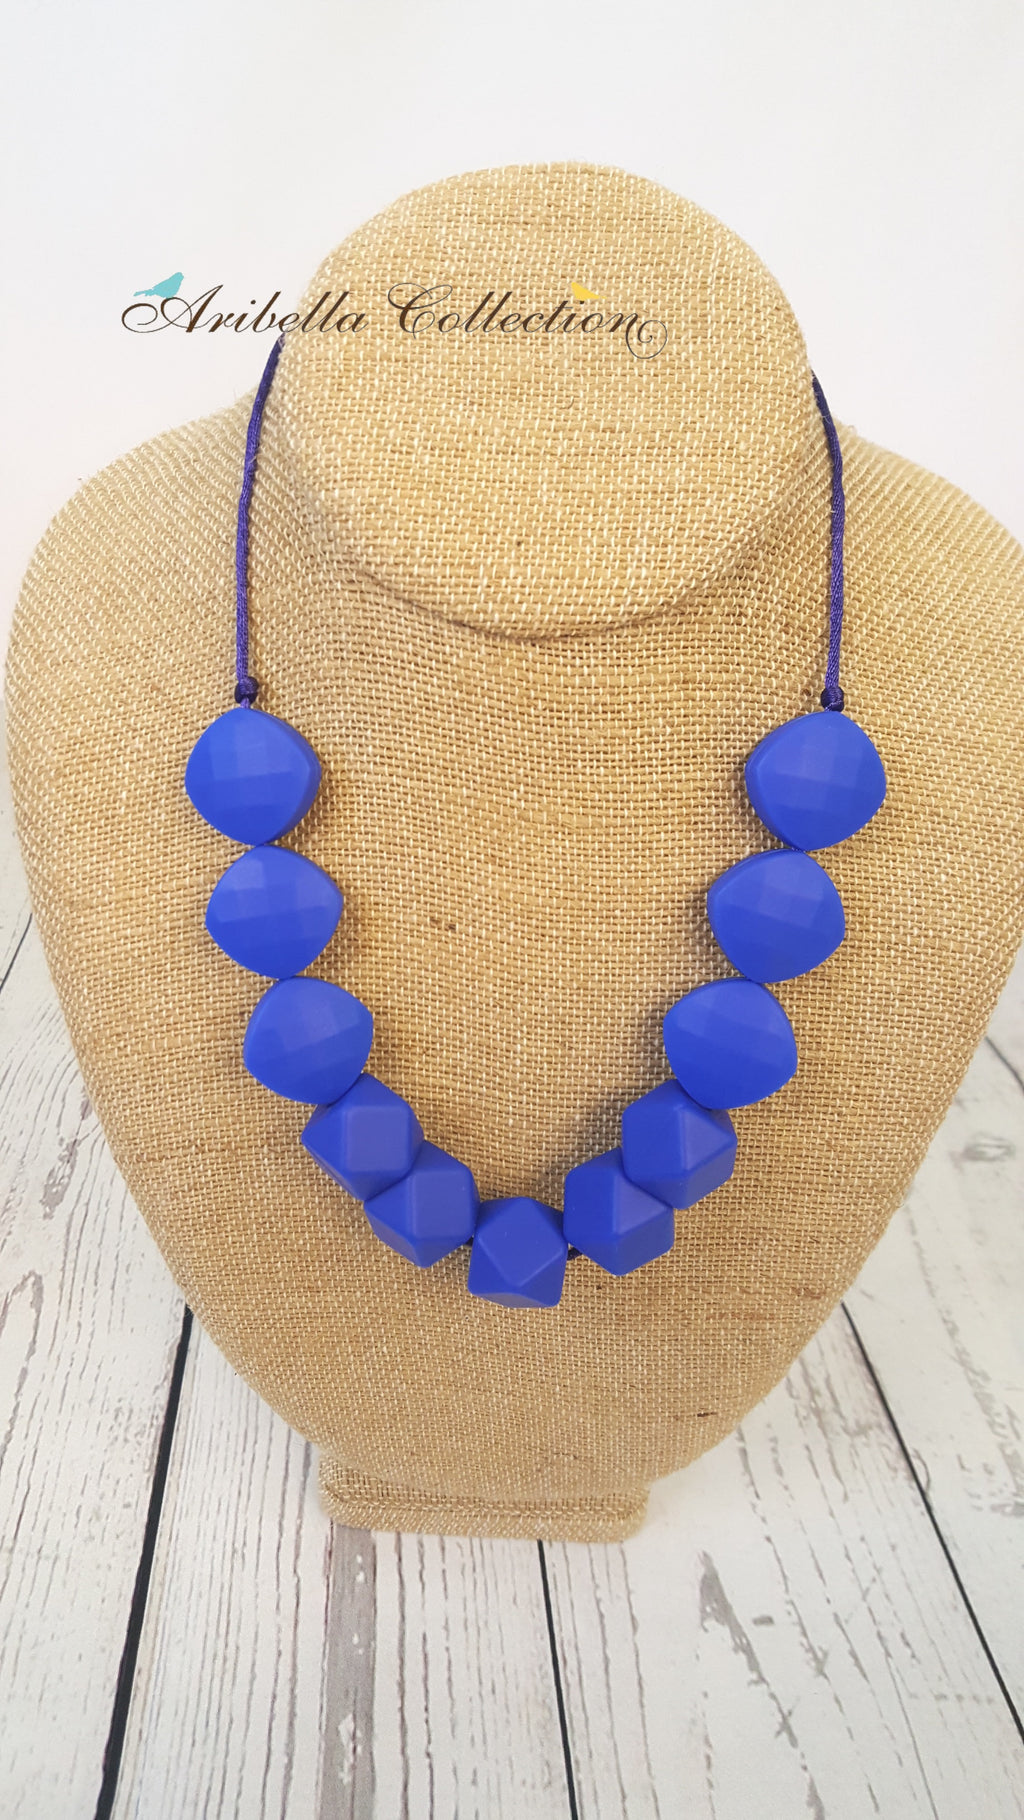 Silicone Necklace - Blue - 2 Shapes - Aribella Collection